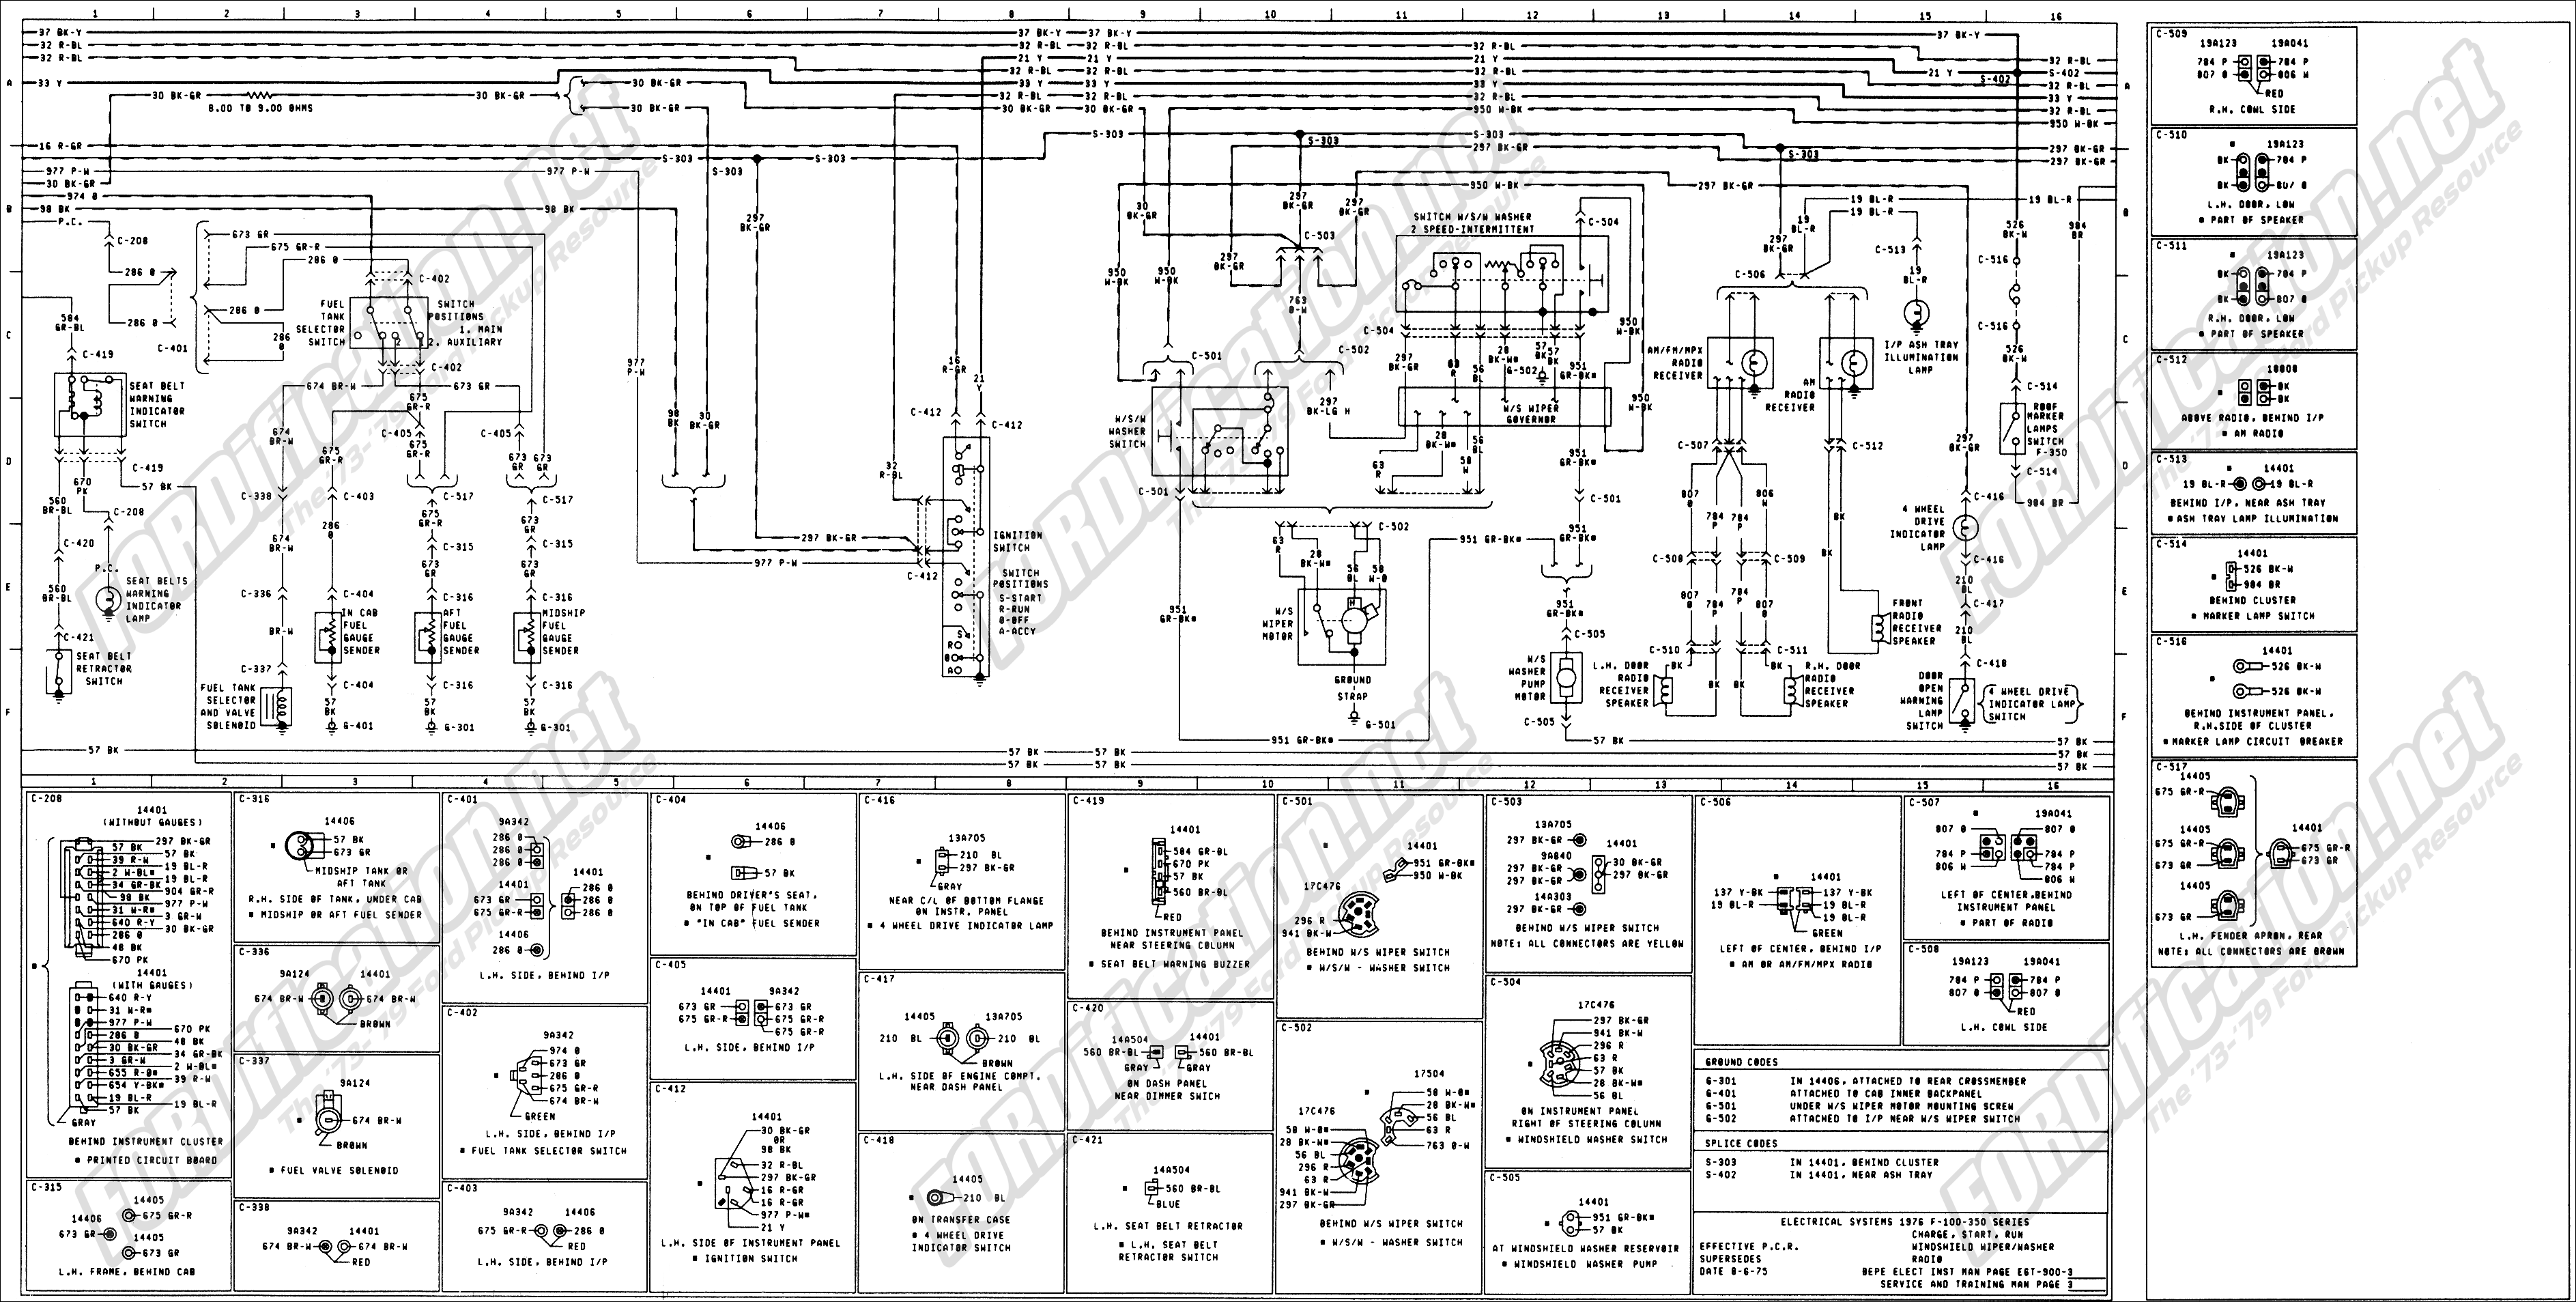 wiring_76master_3of9 1987 ford f 250 wiring diagram wiring diagram simonand 1979 ford f100 fuse box diagram at mr168.co